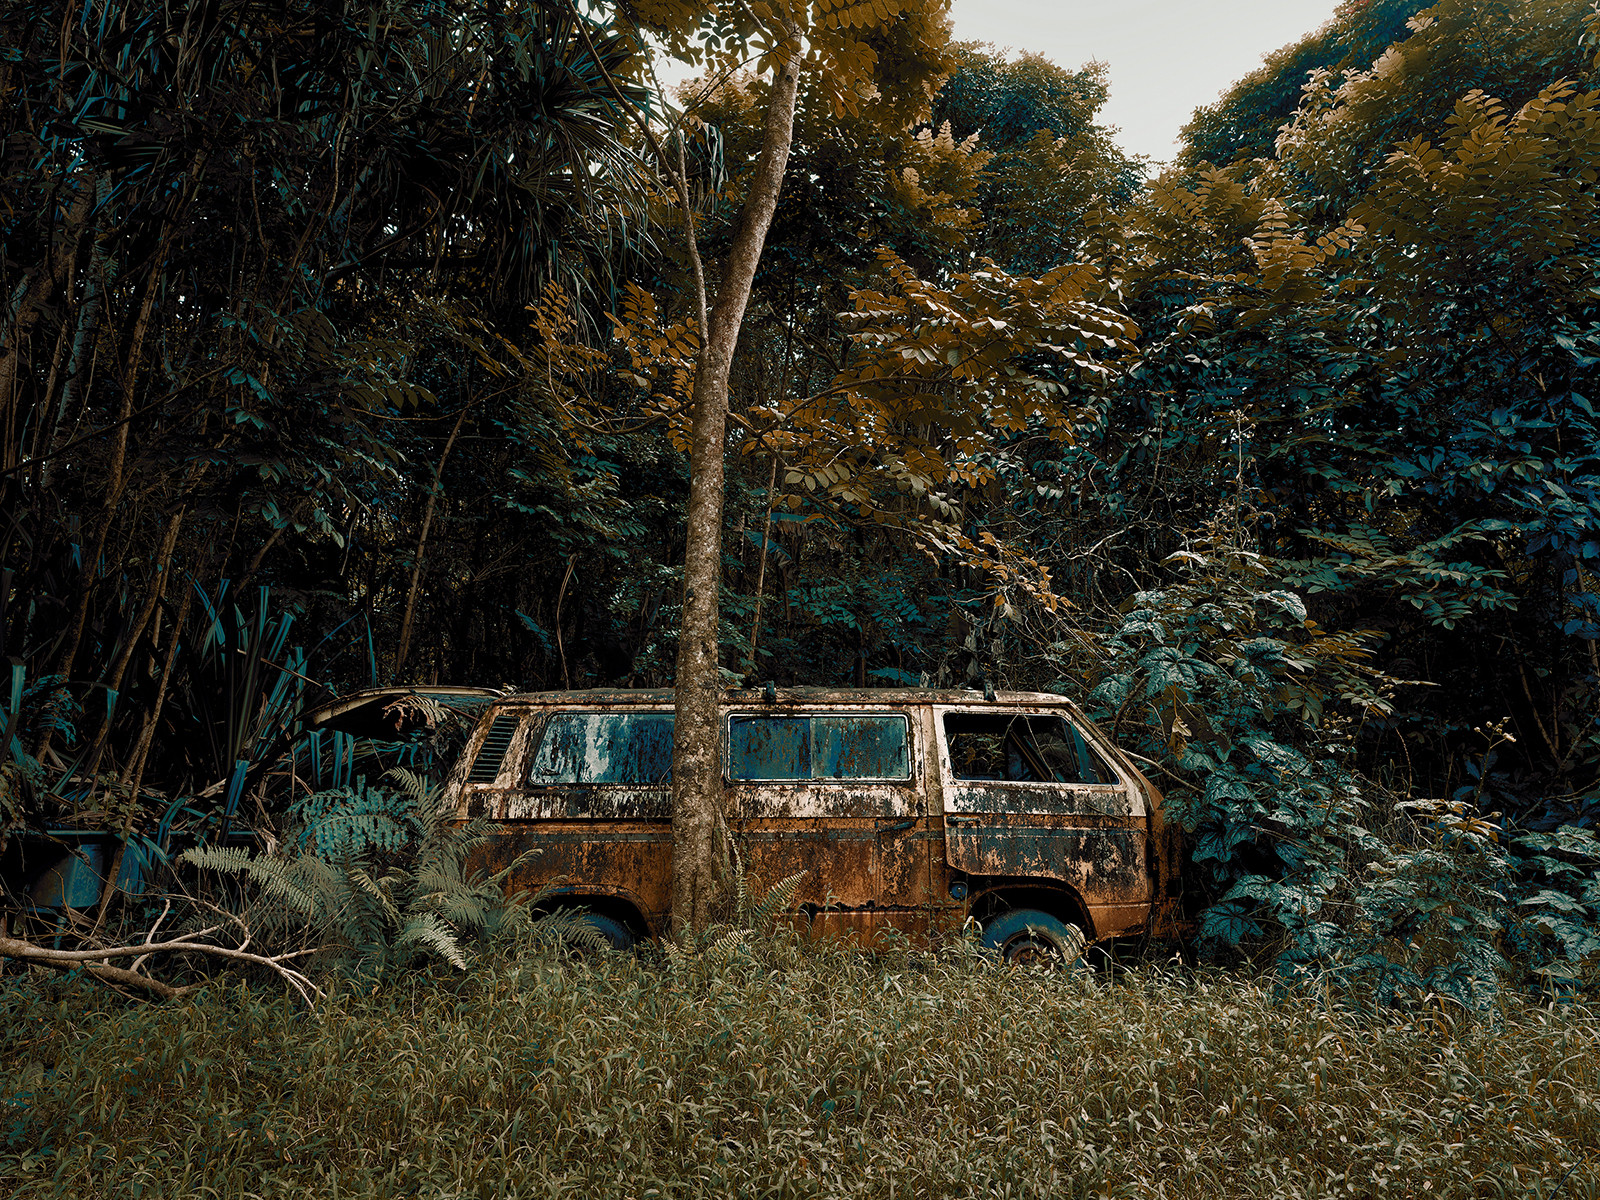 Jungle Cars of Maui personal work 5 by Thomas STROGALSKI